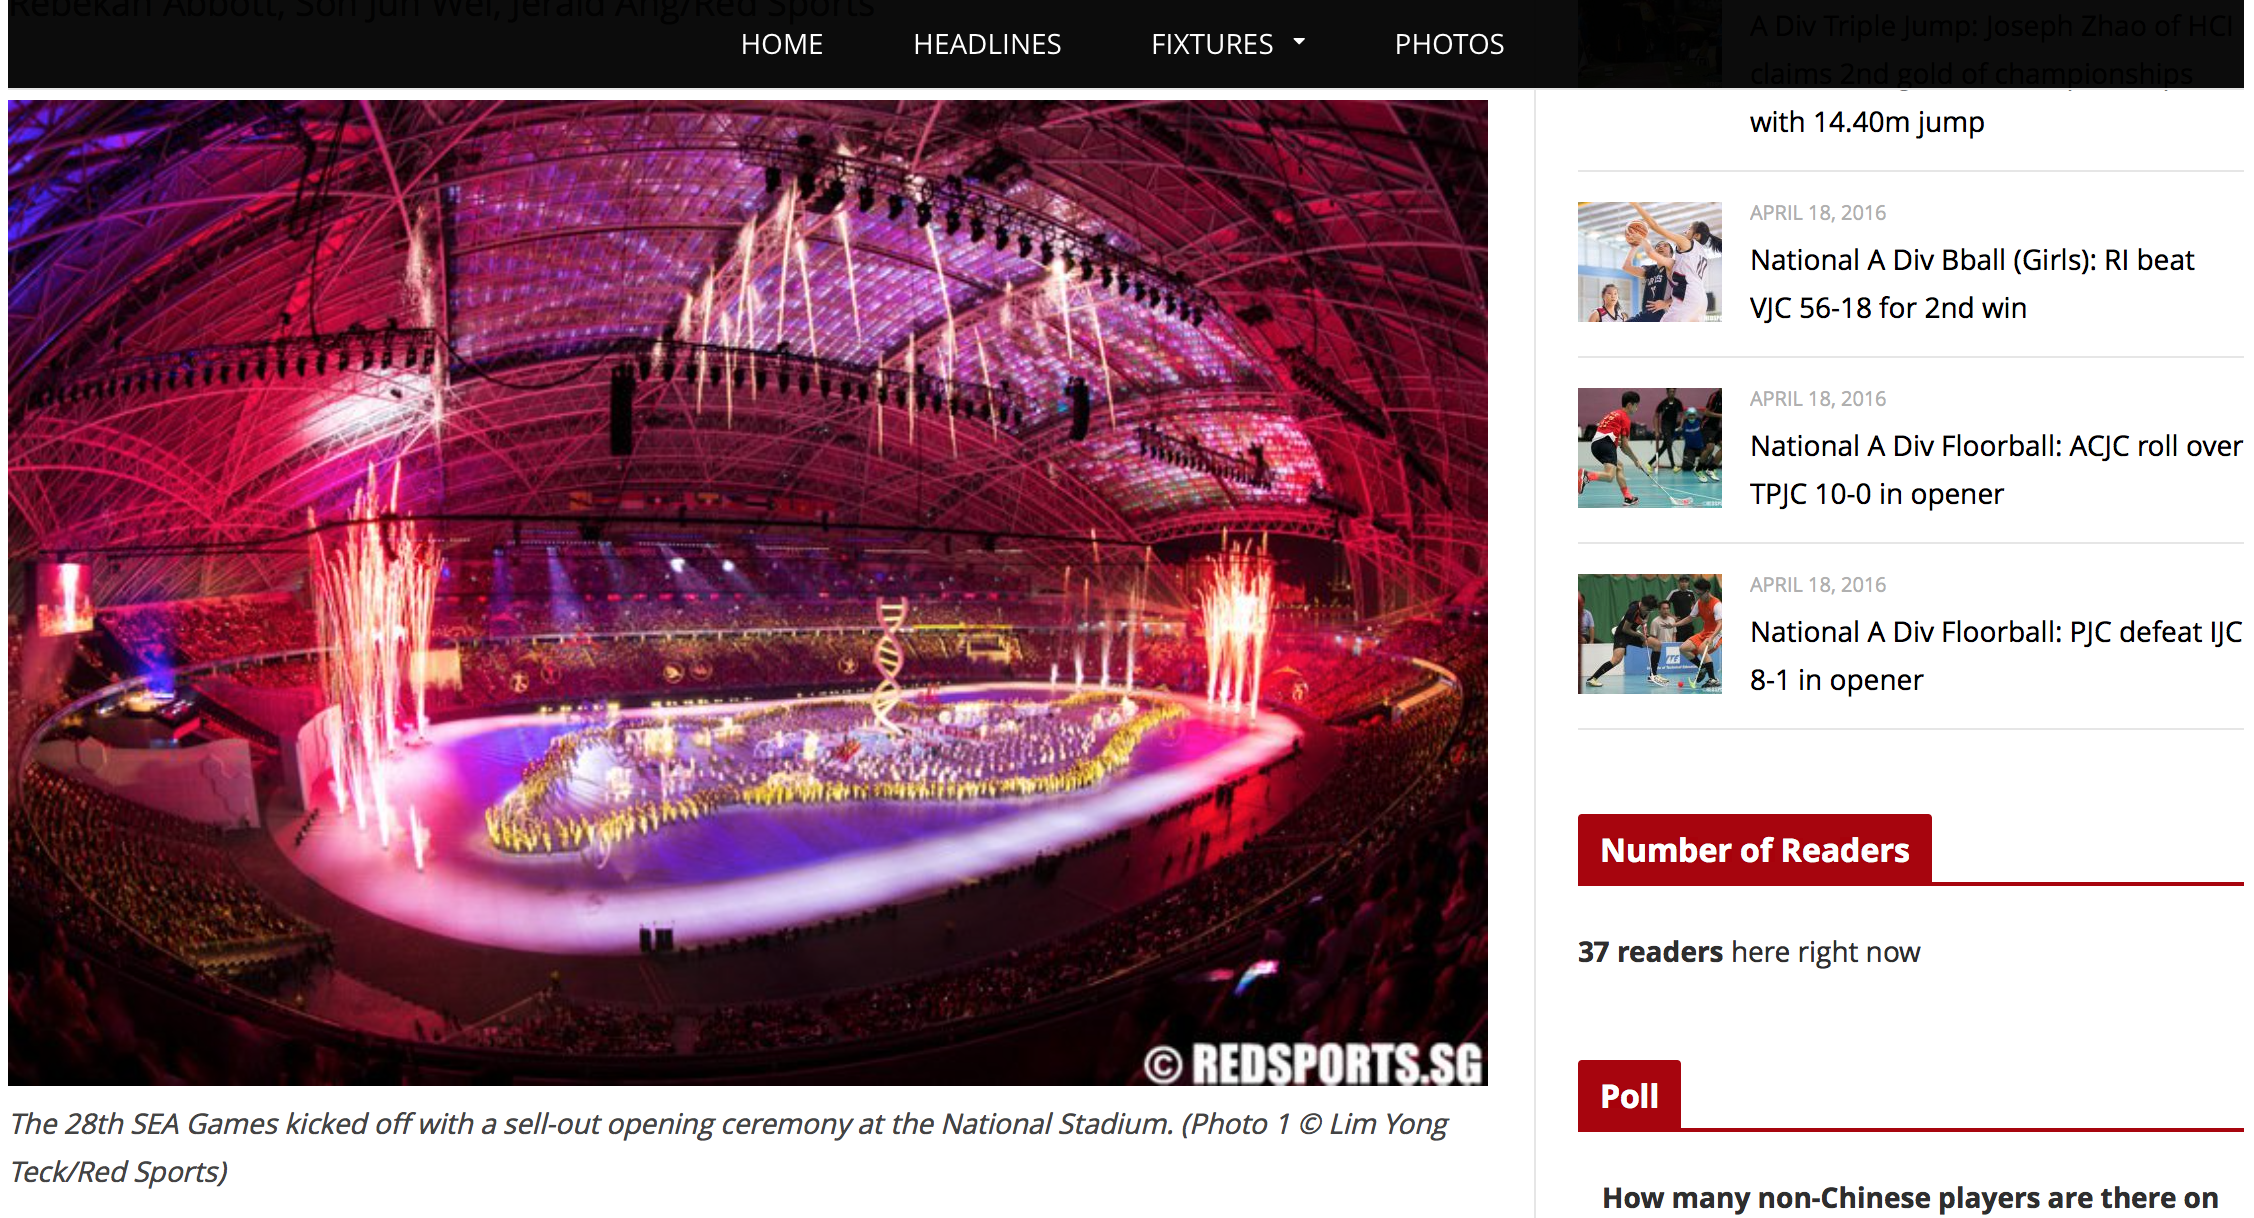 Opening ceremony, 28th Southeast Asian Games for Red Sports (www.redsports.sg)